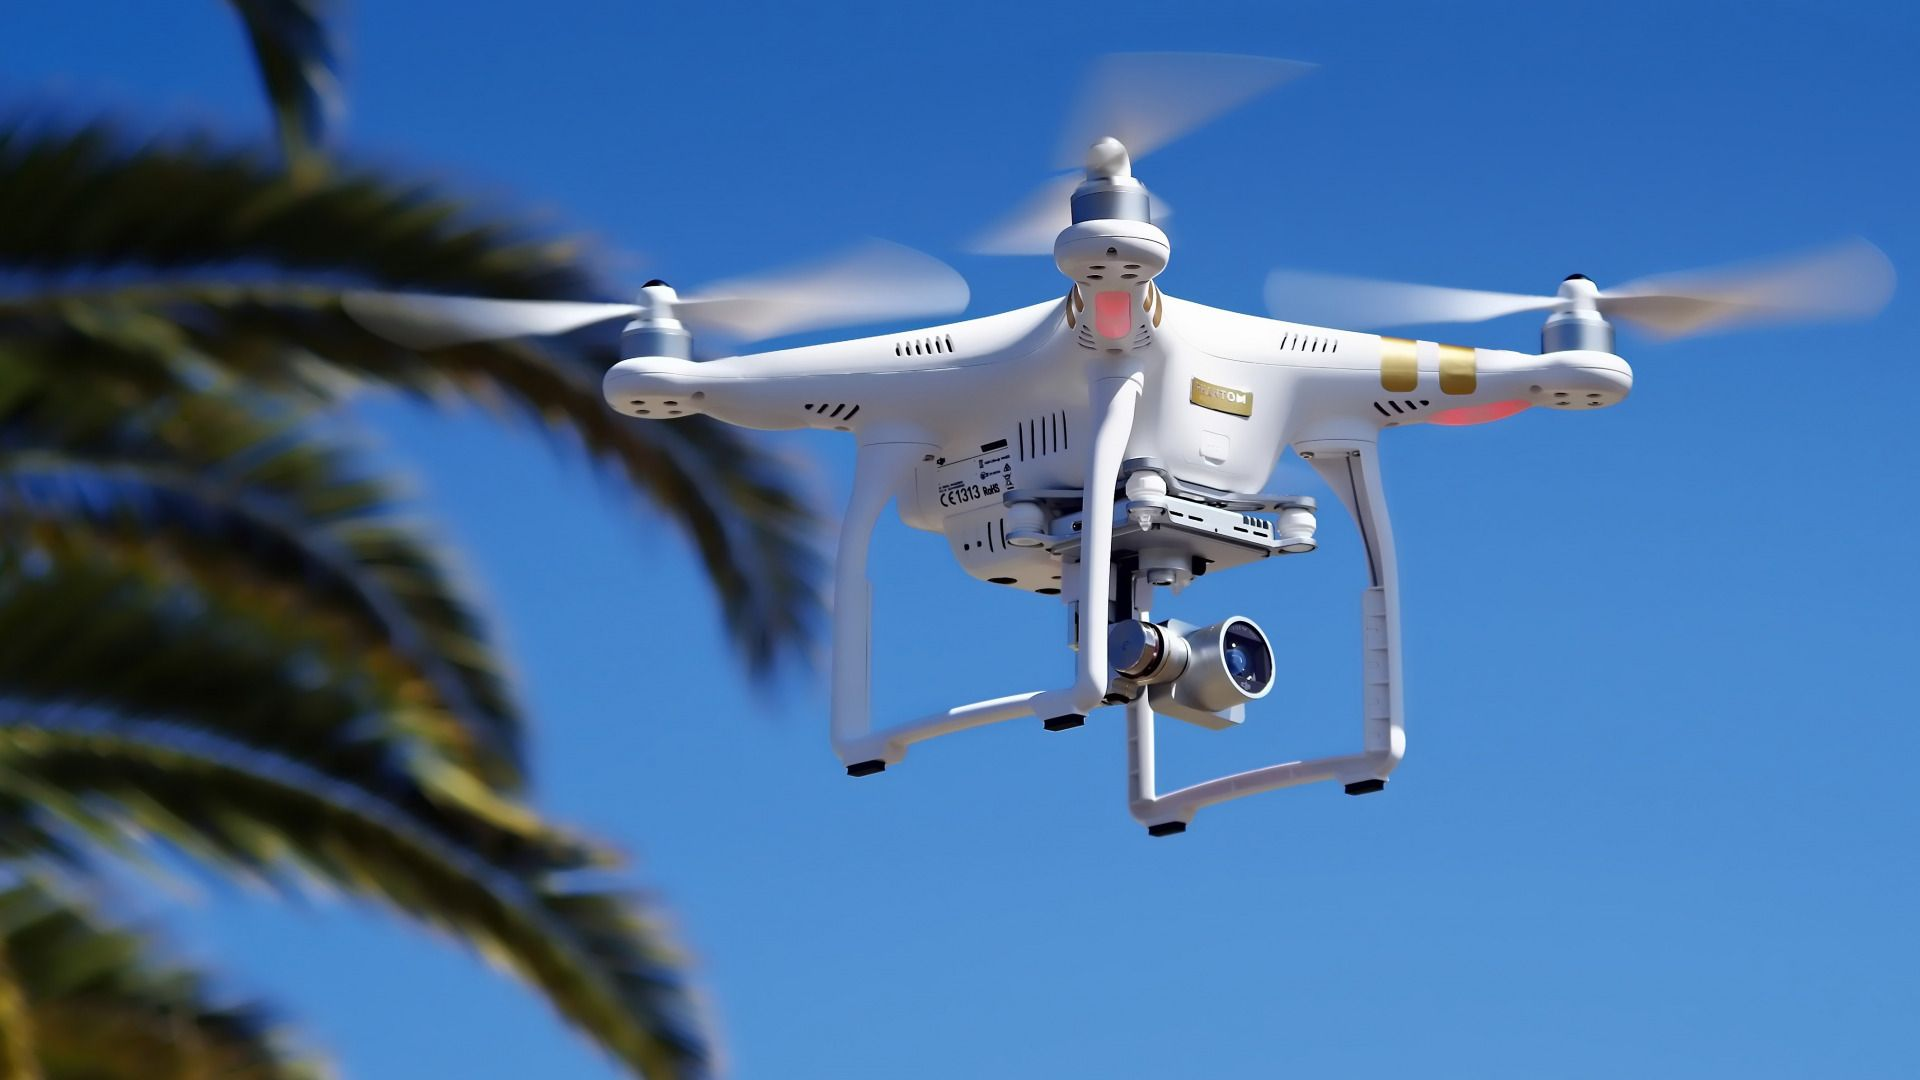 Download Wallpaper White DJI Phantom 3 Drone High Tech Palm Tree